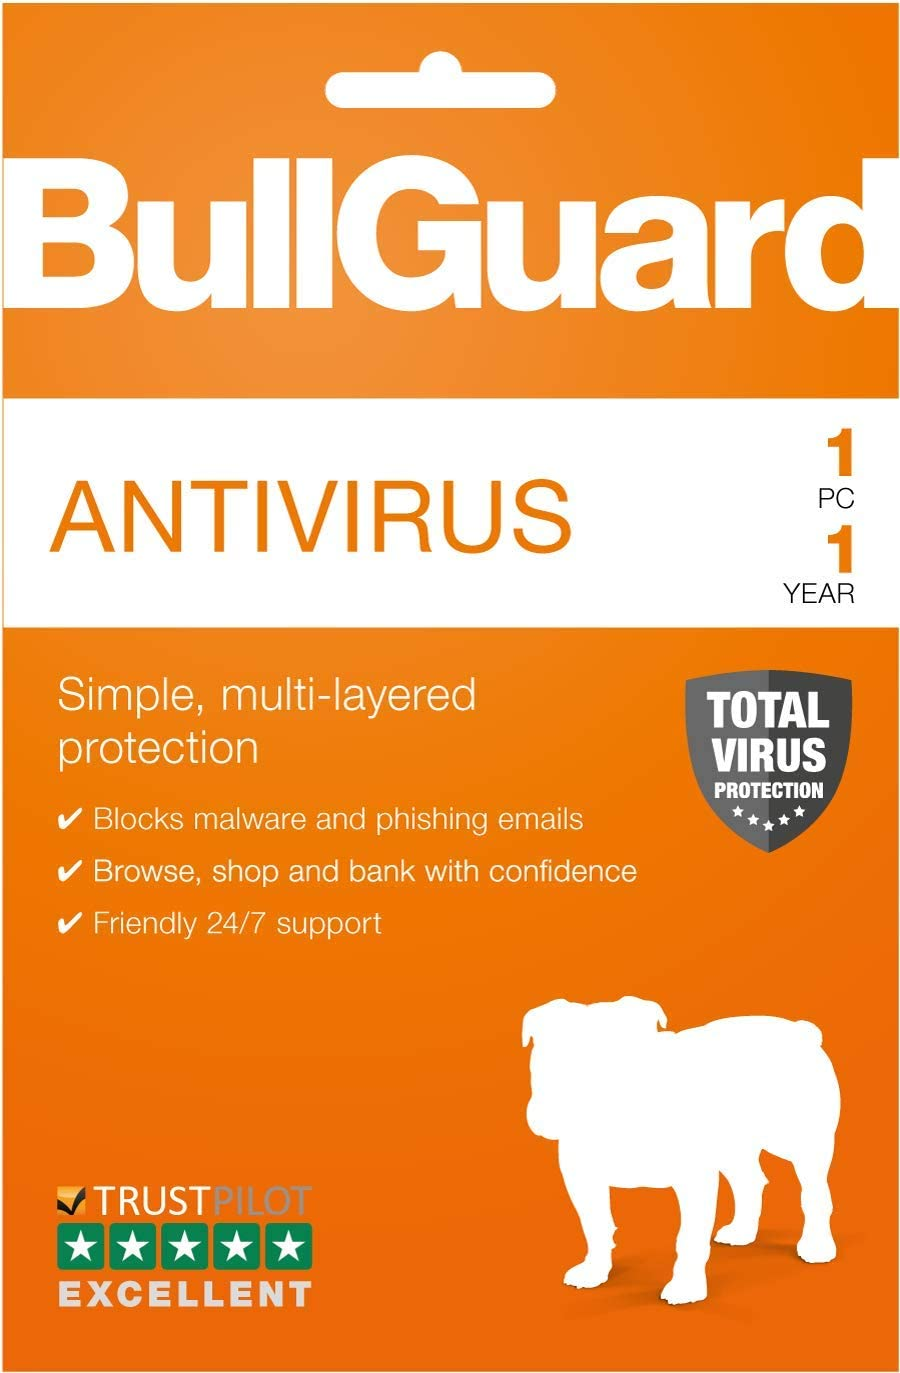 BullGuard Latest Antivirus Protection 1 Device - TRADE